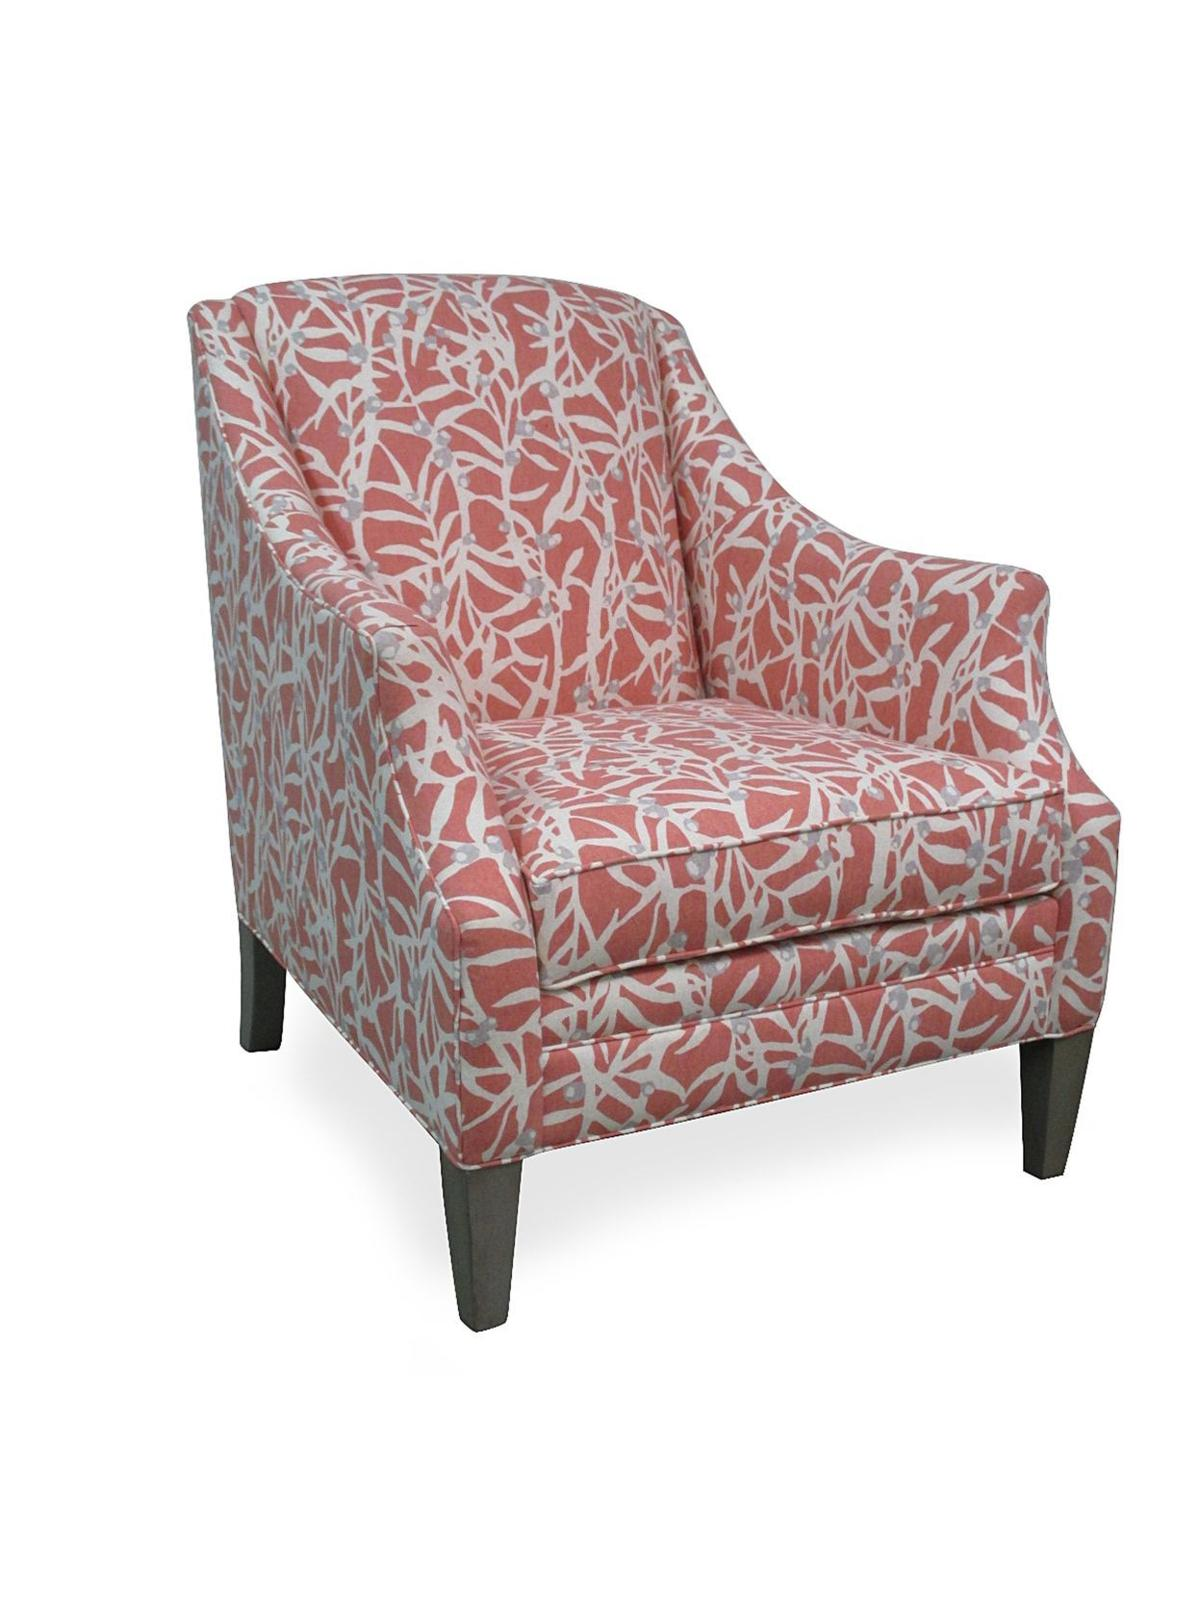 Sam Moore Lark Club Chair.JPG